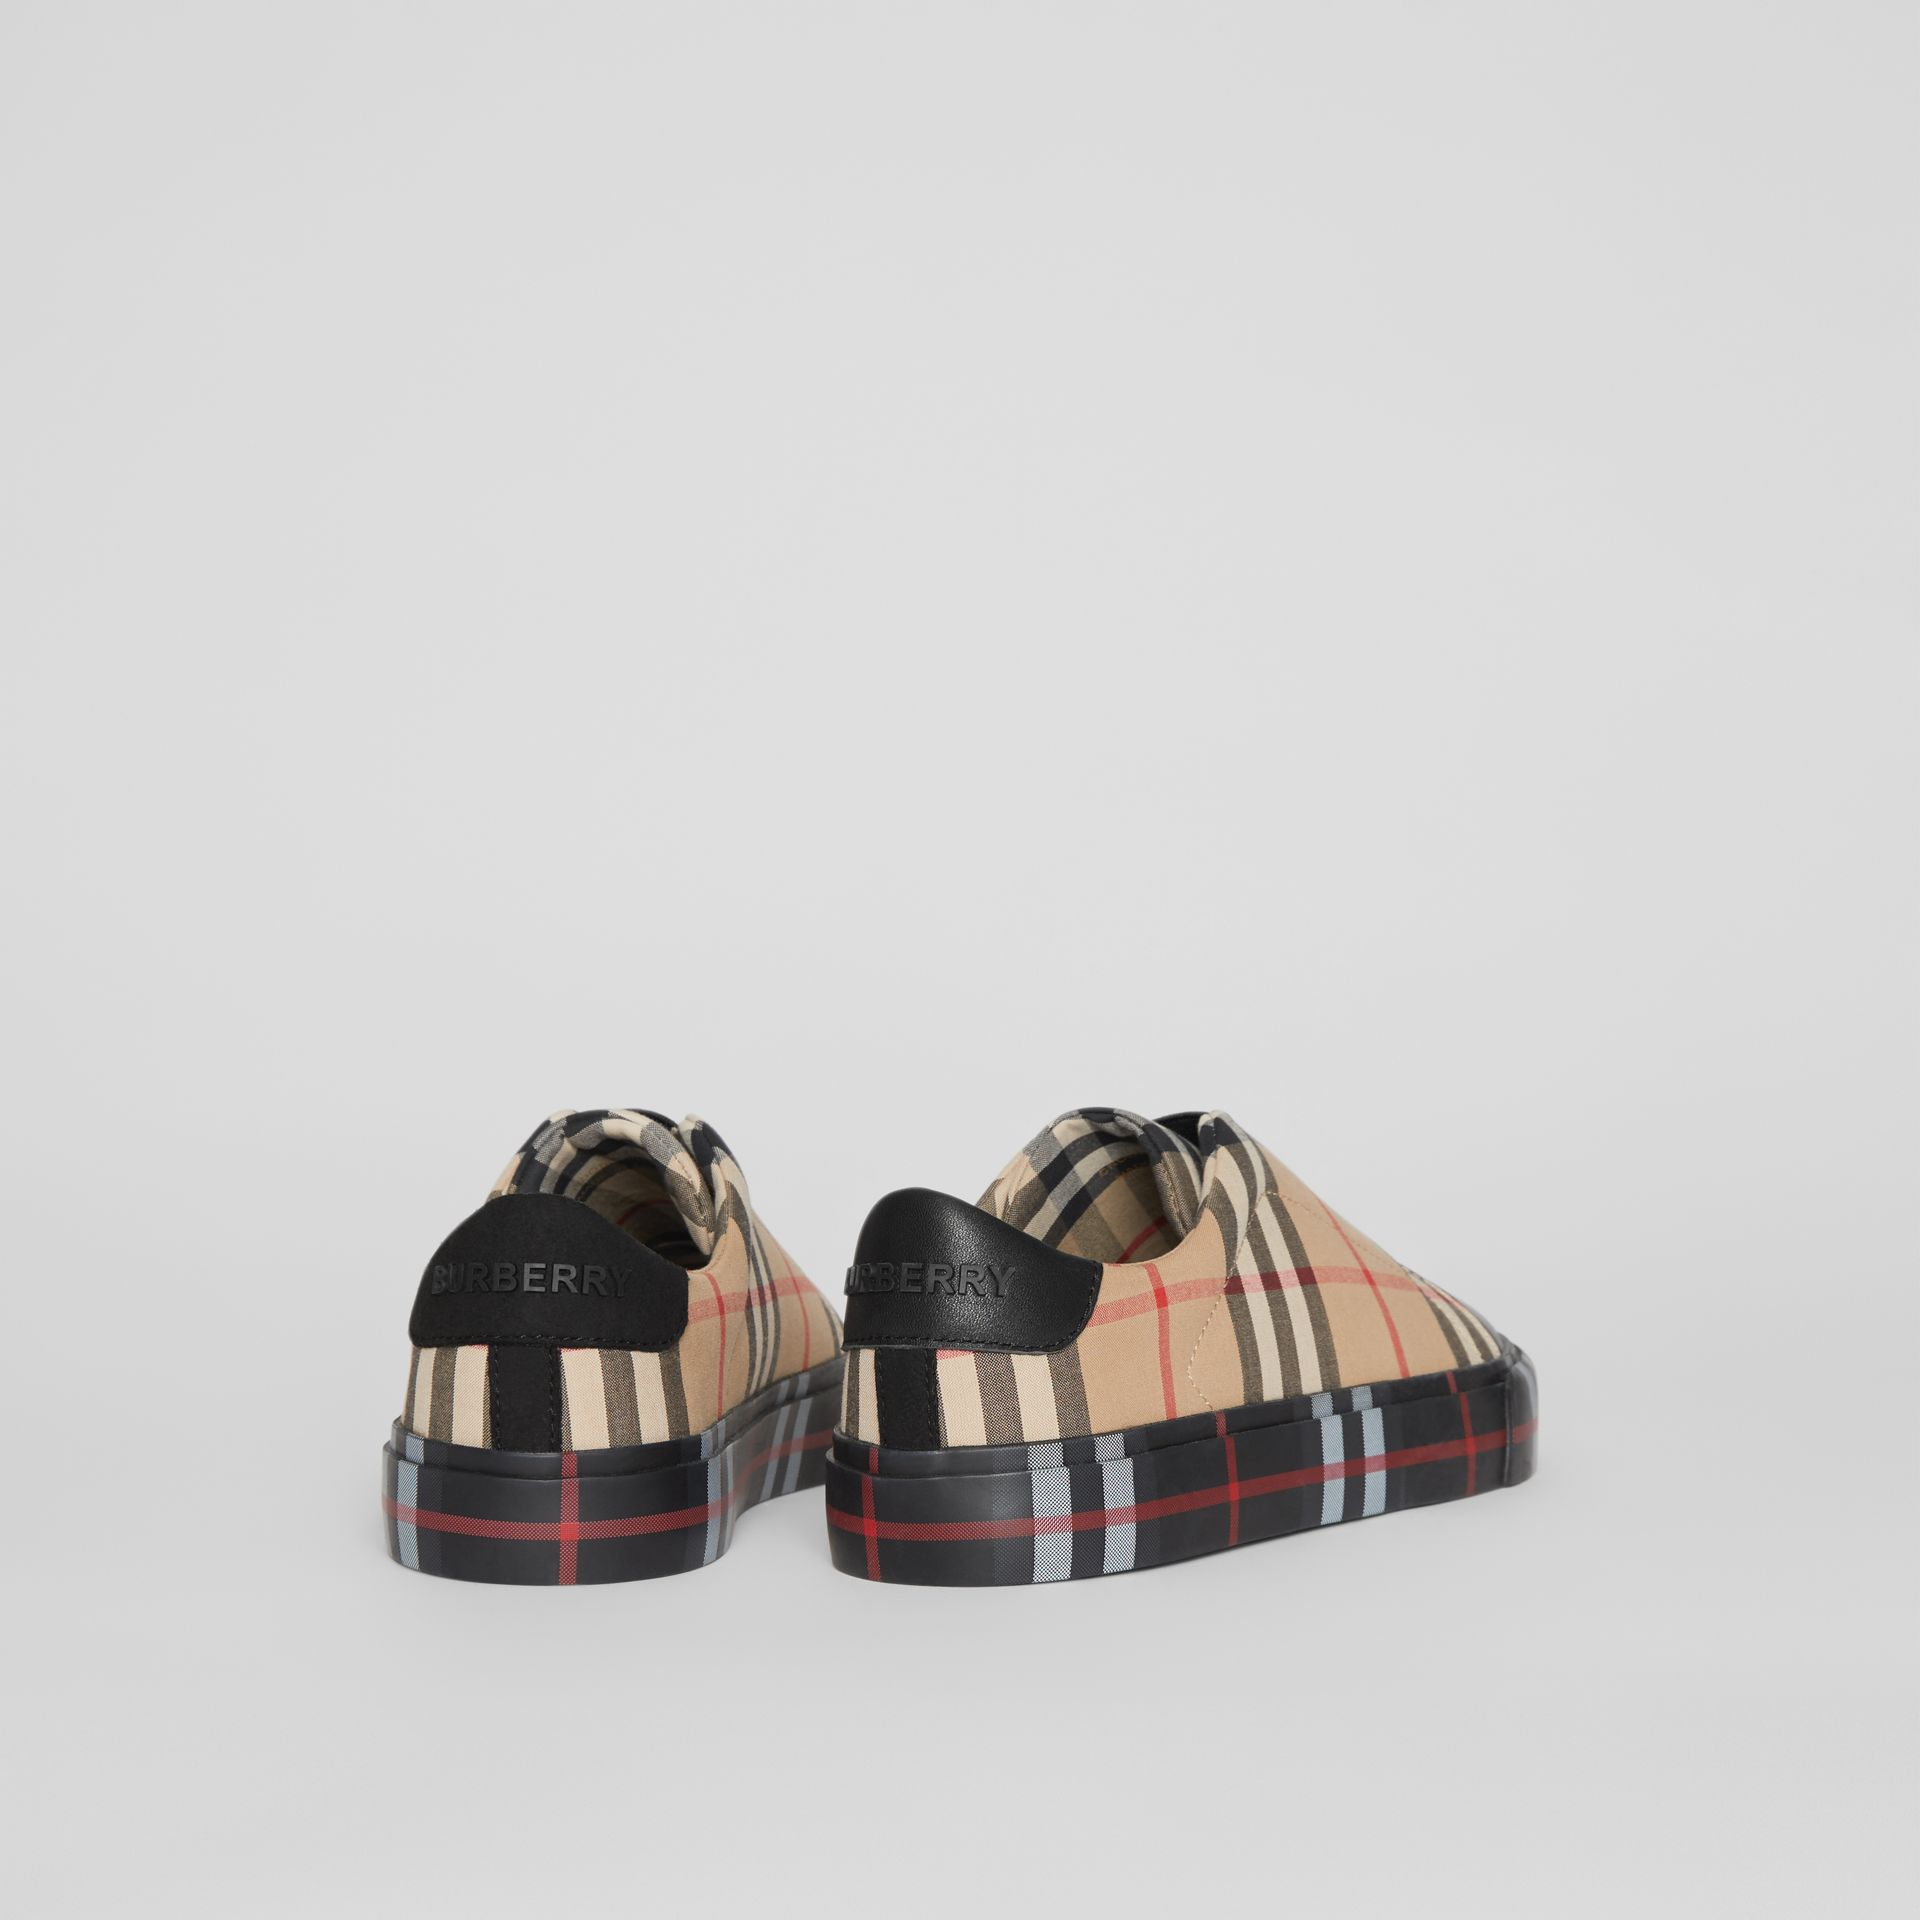 Contrast Check Slip-on Sneakers in Black/archive Beige - Children | Burberry United Kingdom - gallery image 2